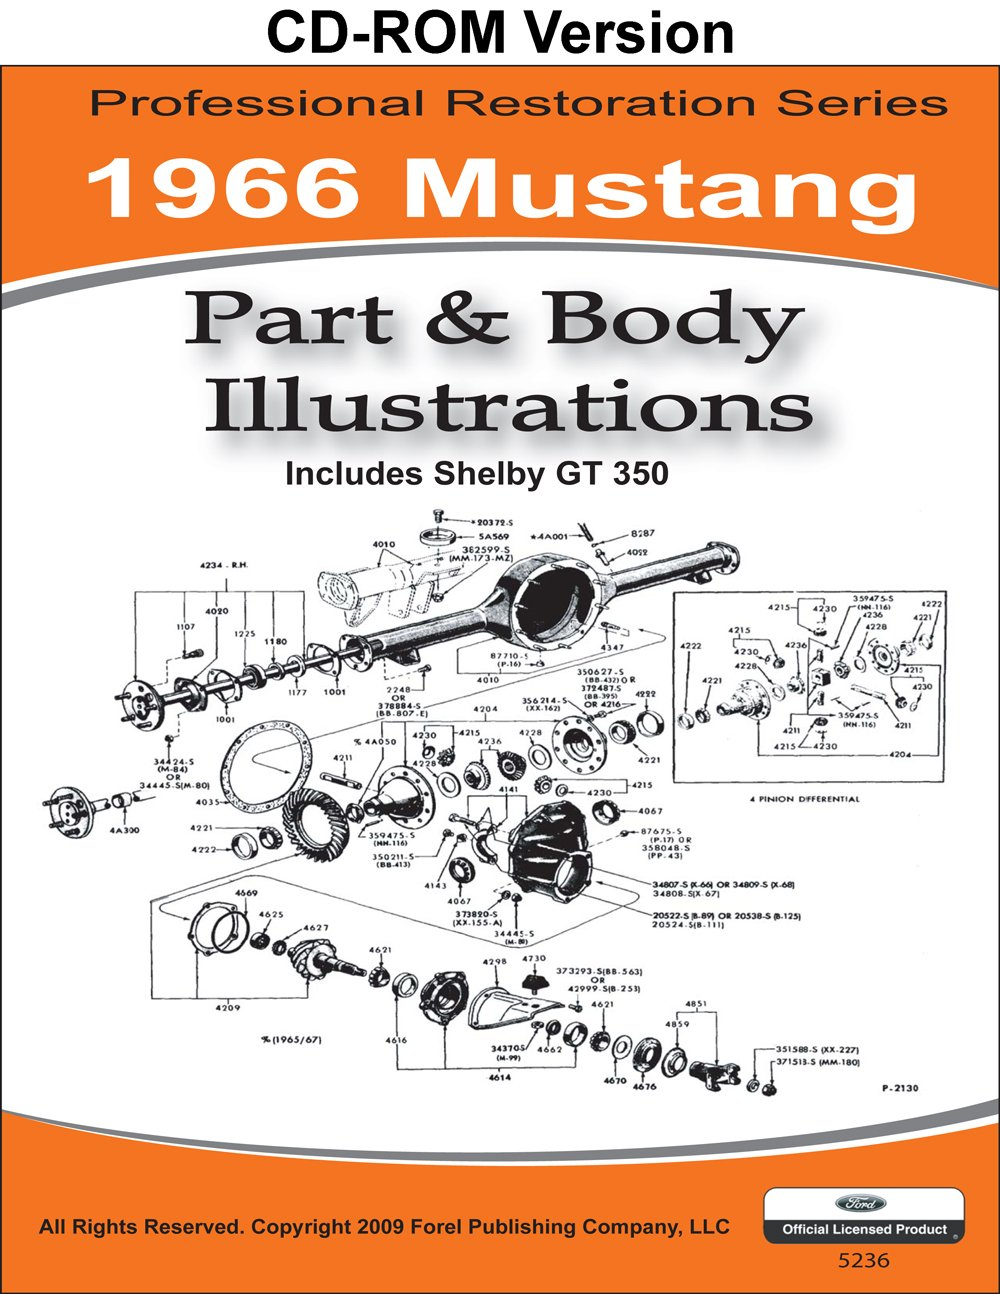 1966 Mustang Part And Body Illustrations Ford Motor Company David Accessories Electrical Wiring Diagrams Of All E Leblanc 9781603710343 Books